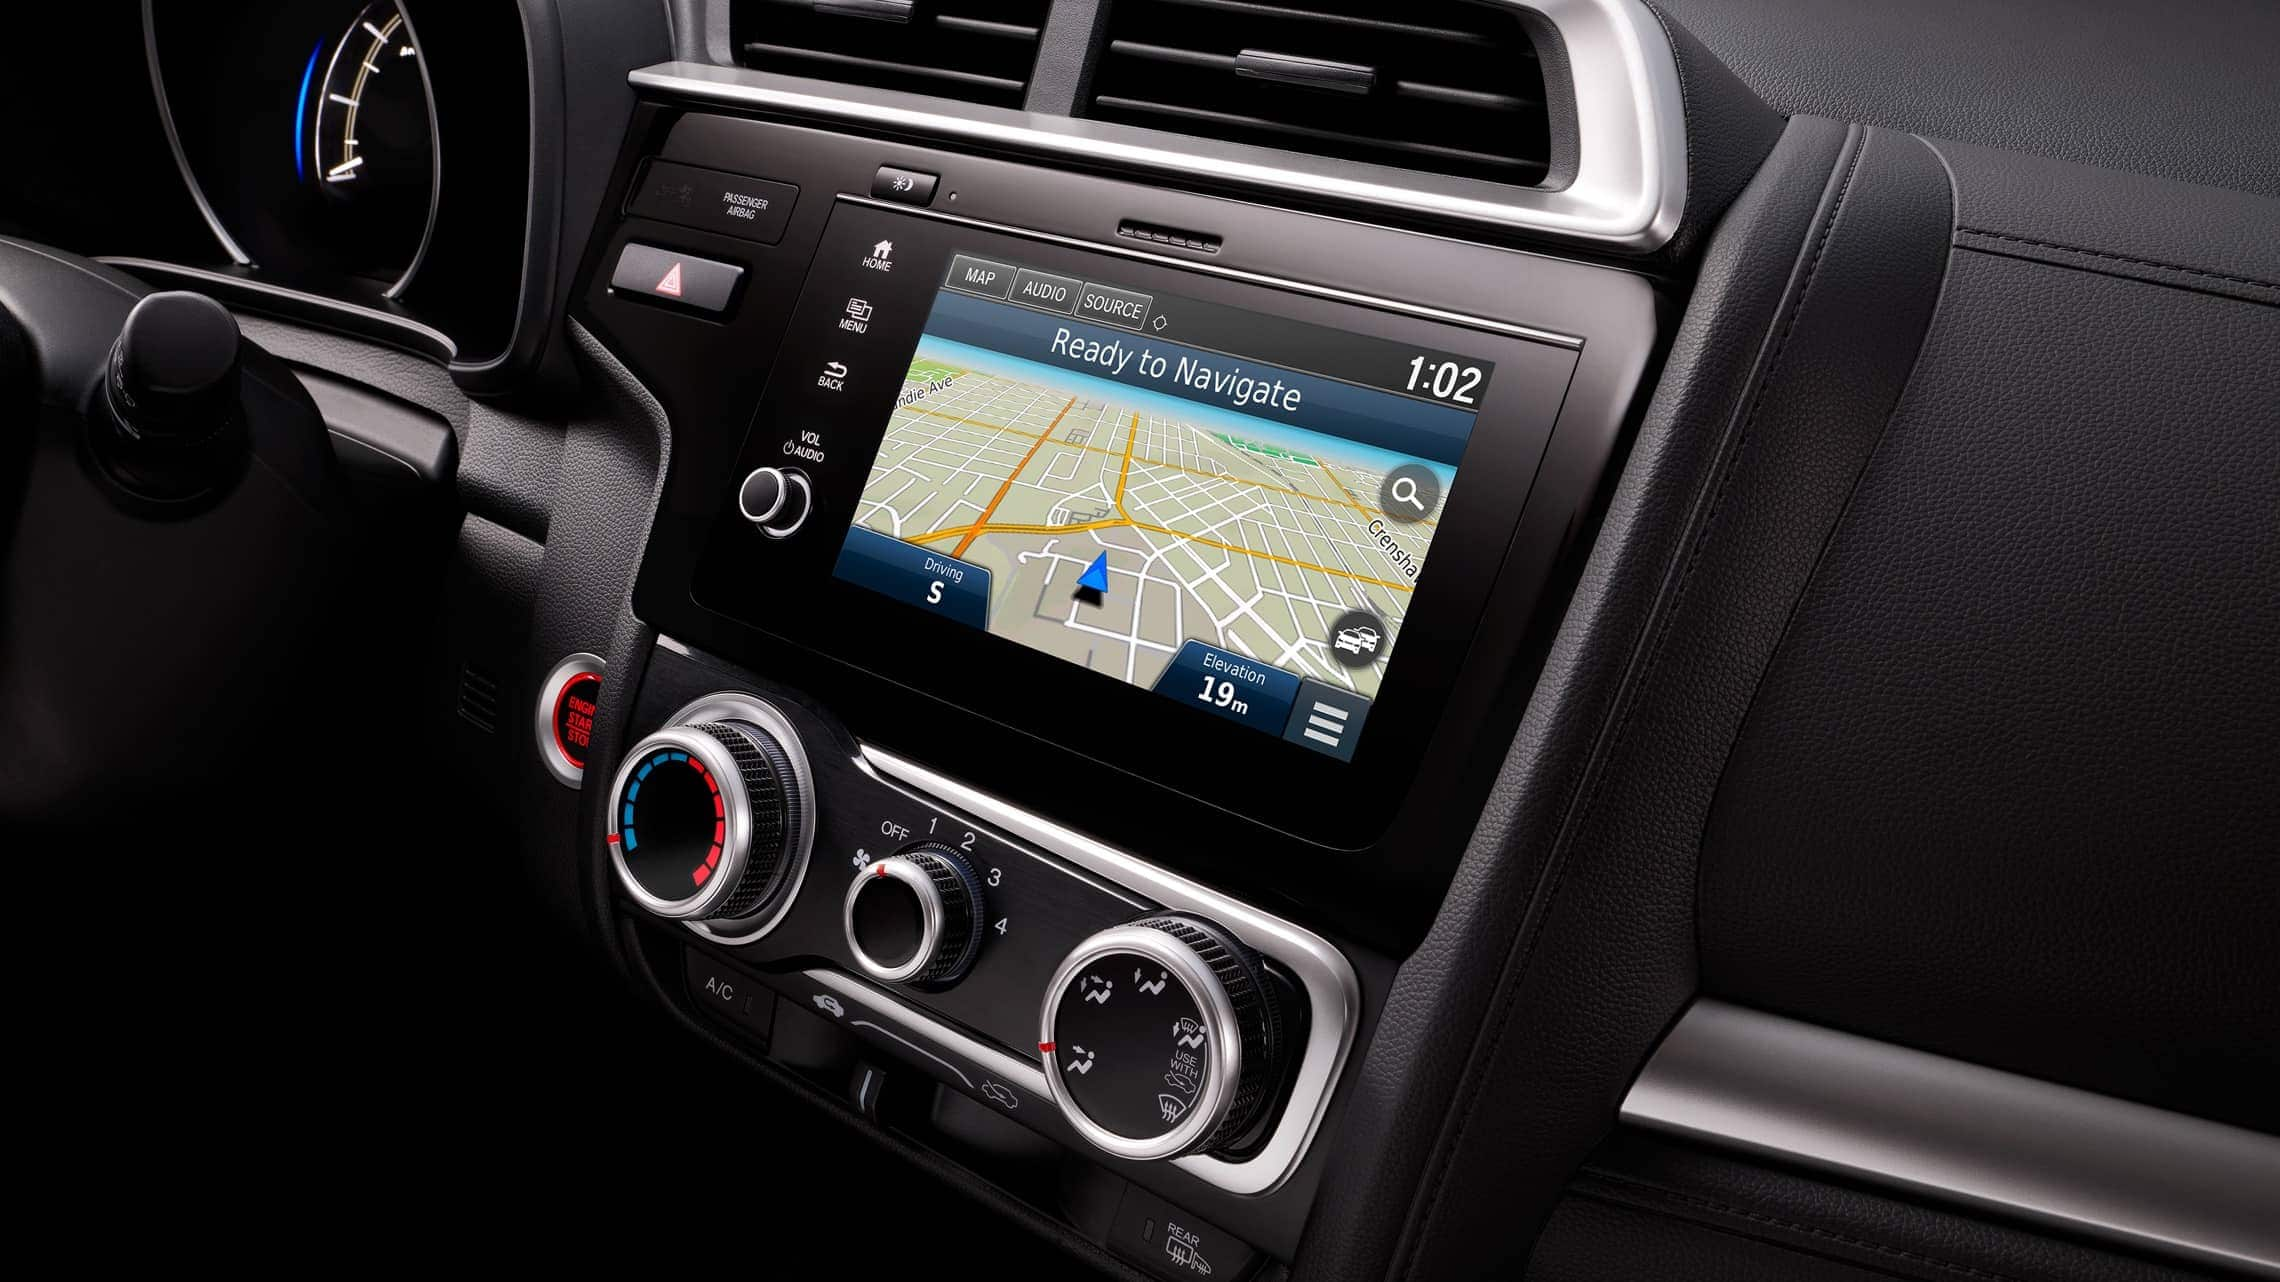 Display Audio touch-screen with Honda Satellie-Linked Navigation™ system detail on 2019 Honda Fit.